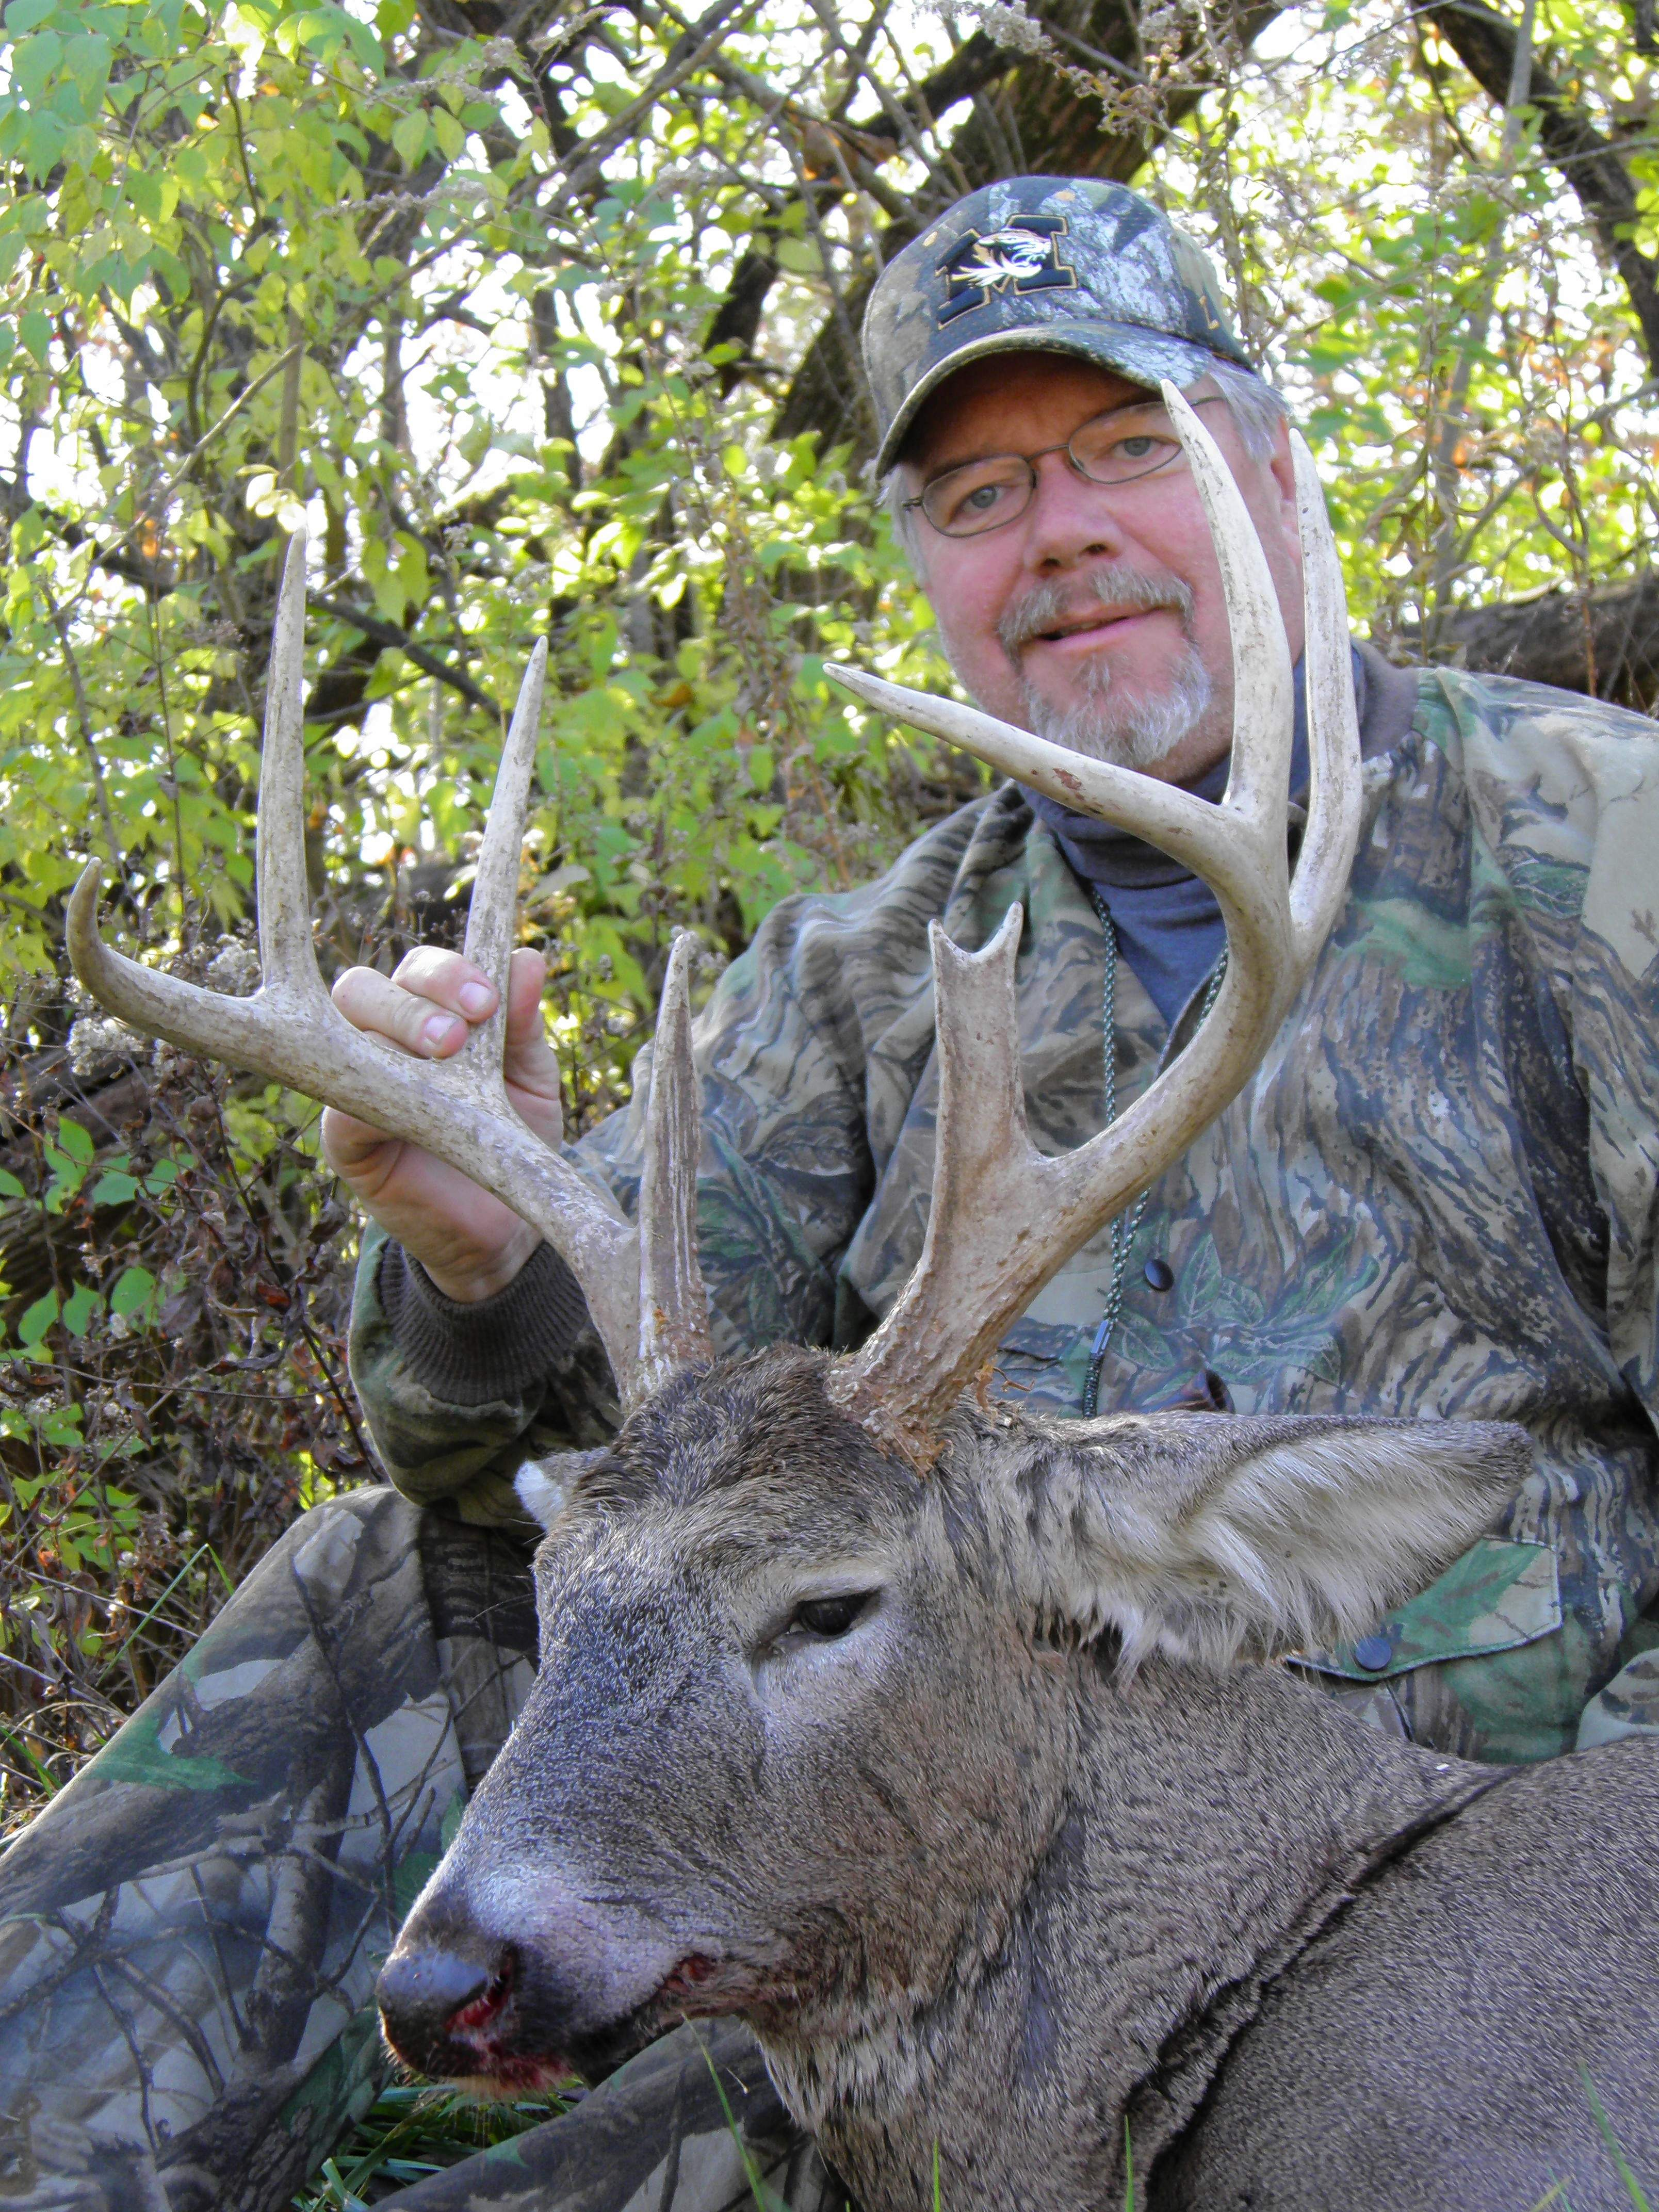 Mike Roux finds early season bucks a bit easier to pattern before the rut kicks in.